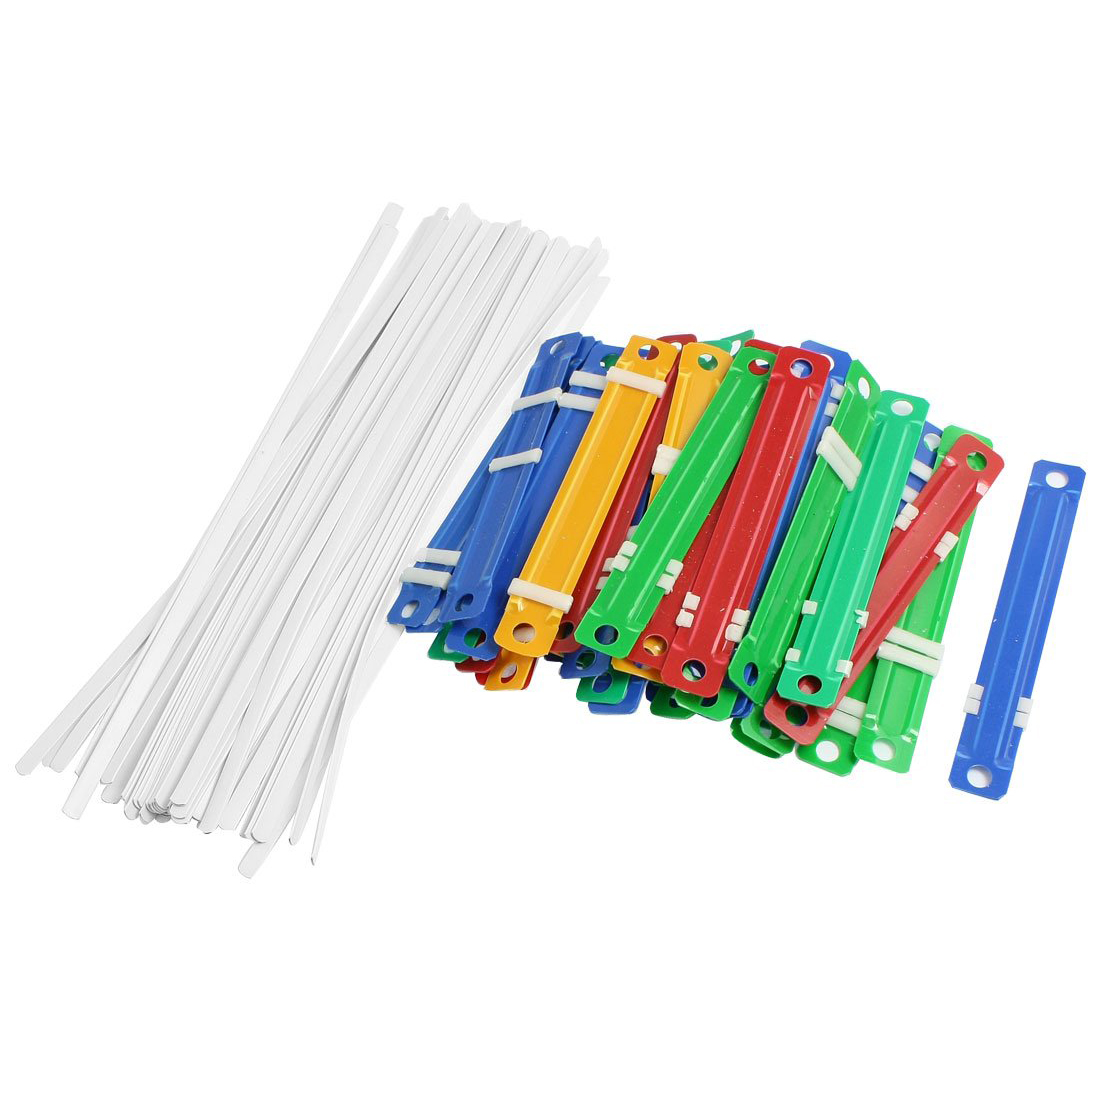 5X 50 Pcs Office School Colorful Plastic Binding Two-Piece Document Paper Fasteners